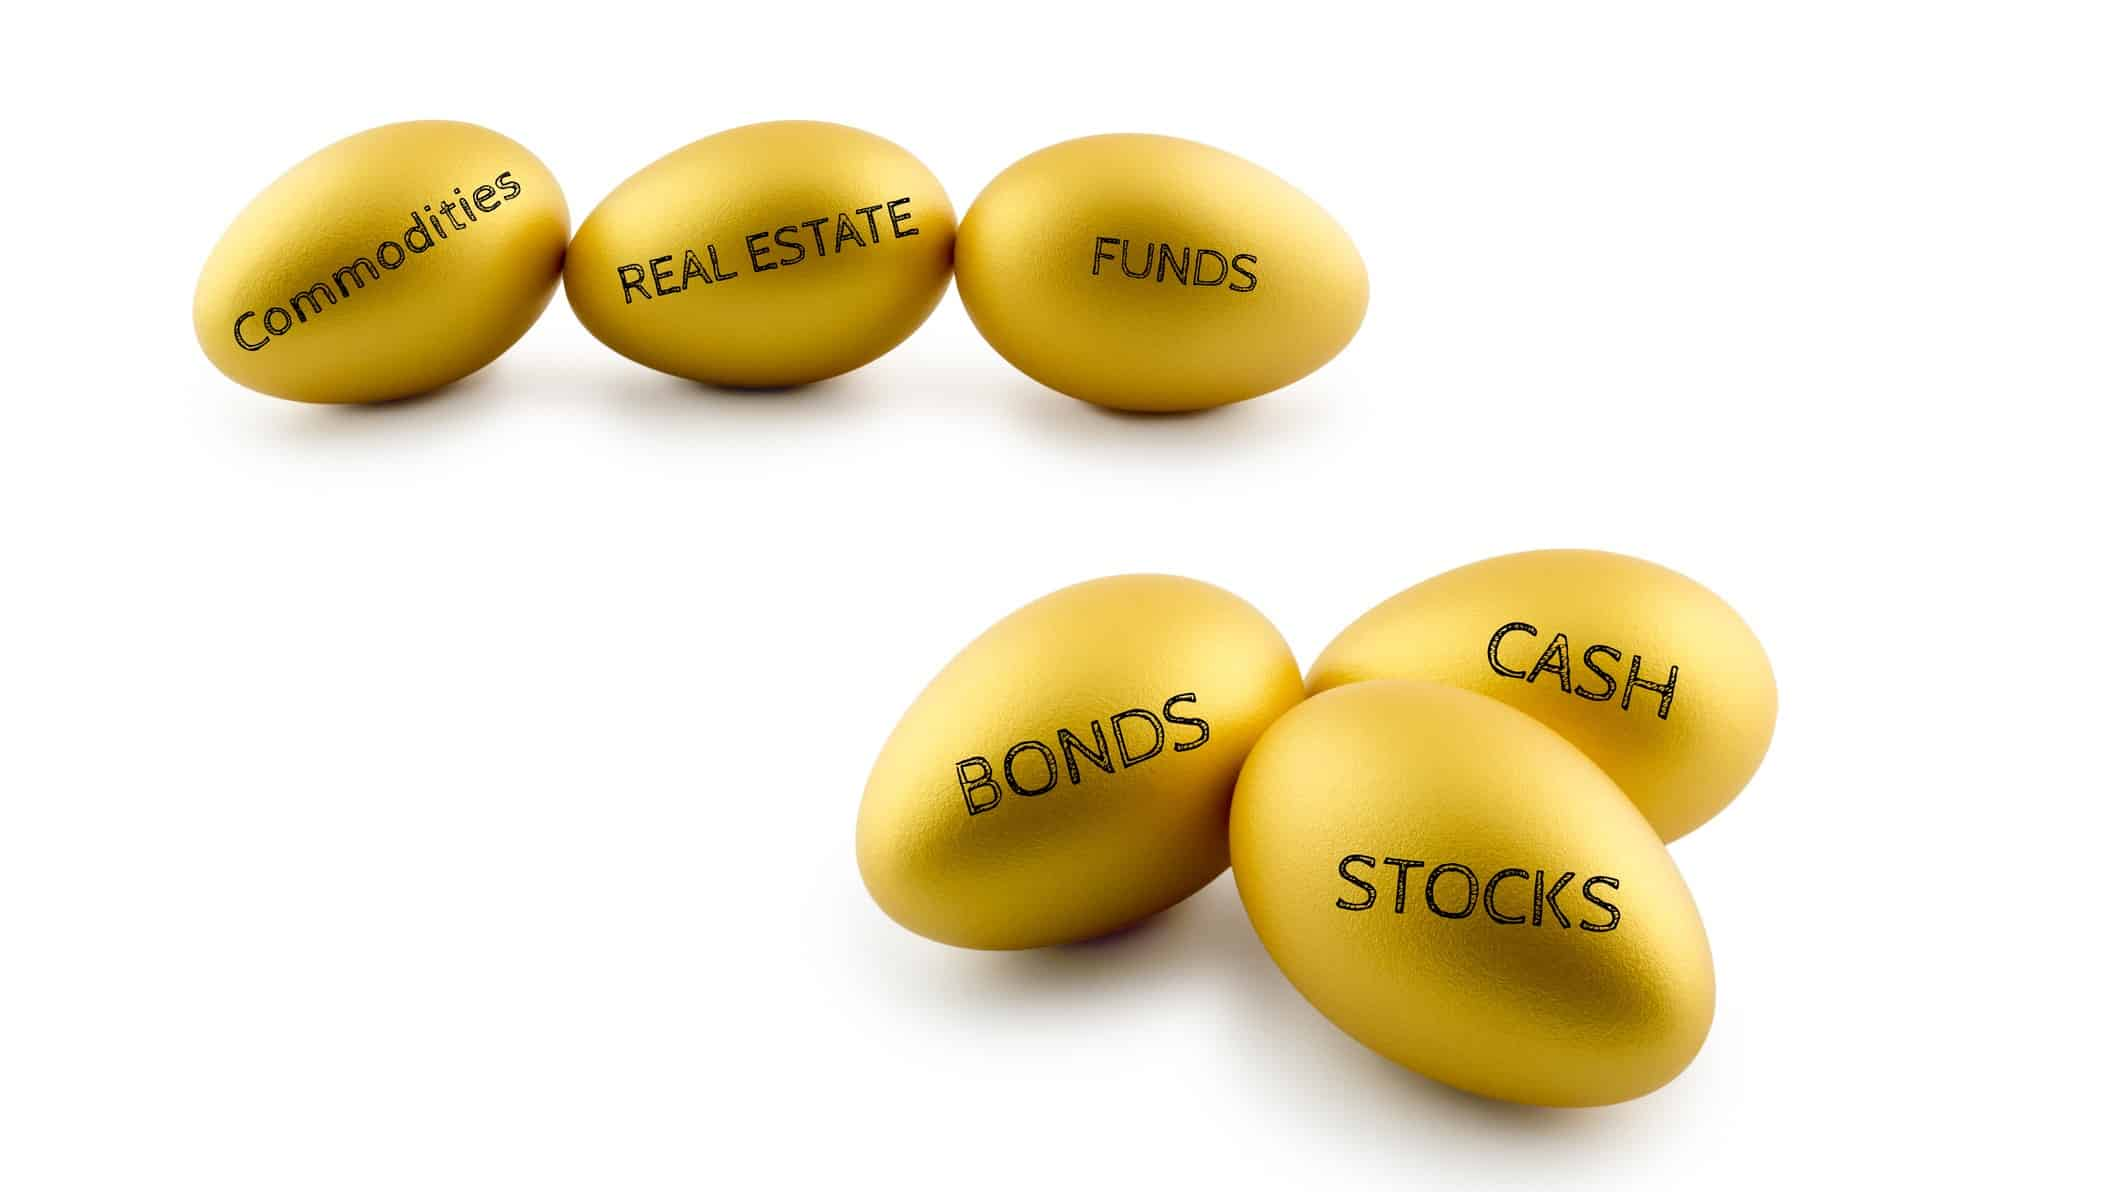 diversification for asx shares represented by golden eggs with different titles such as bonds, stocks, funds et cetera